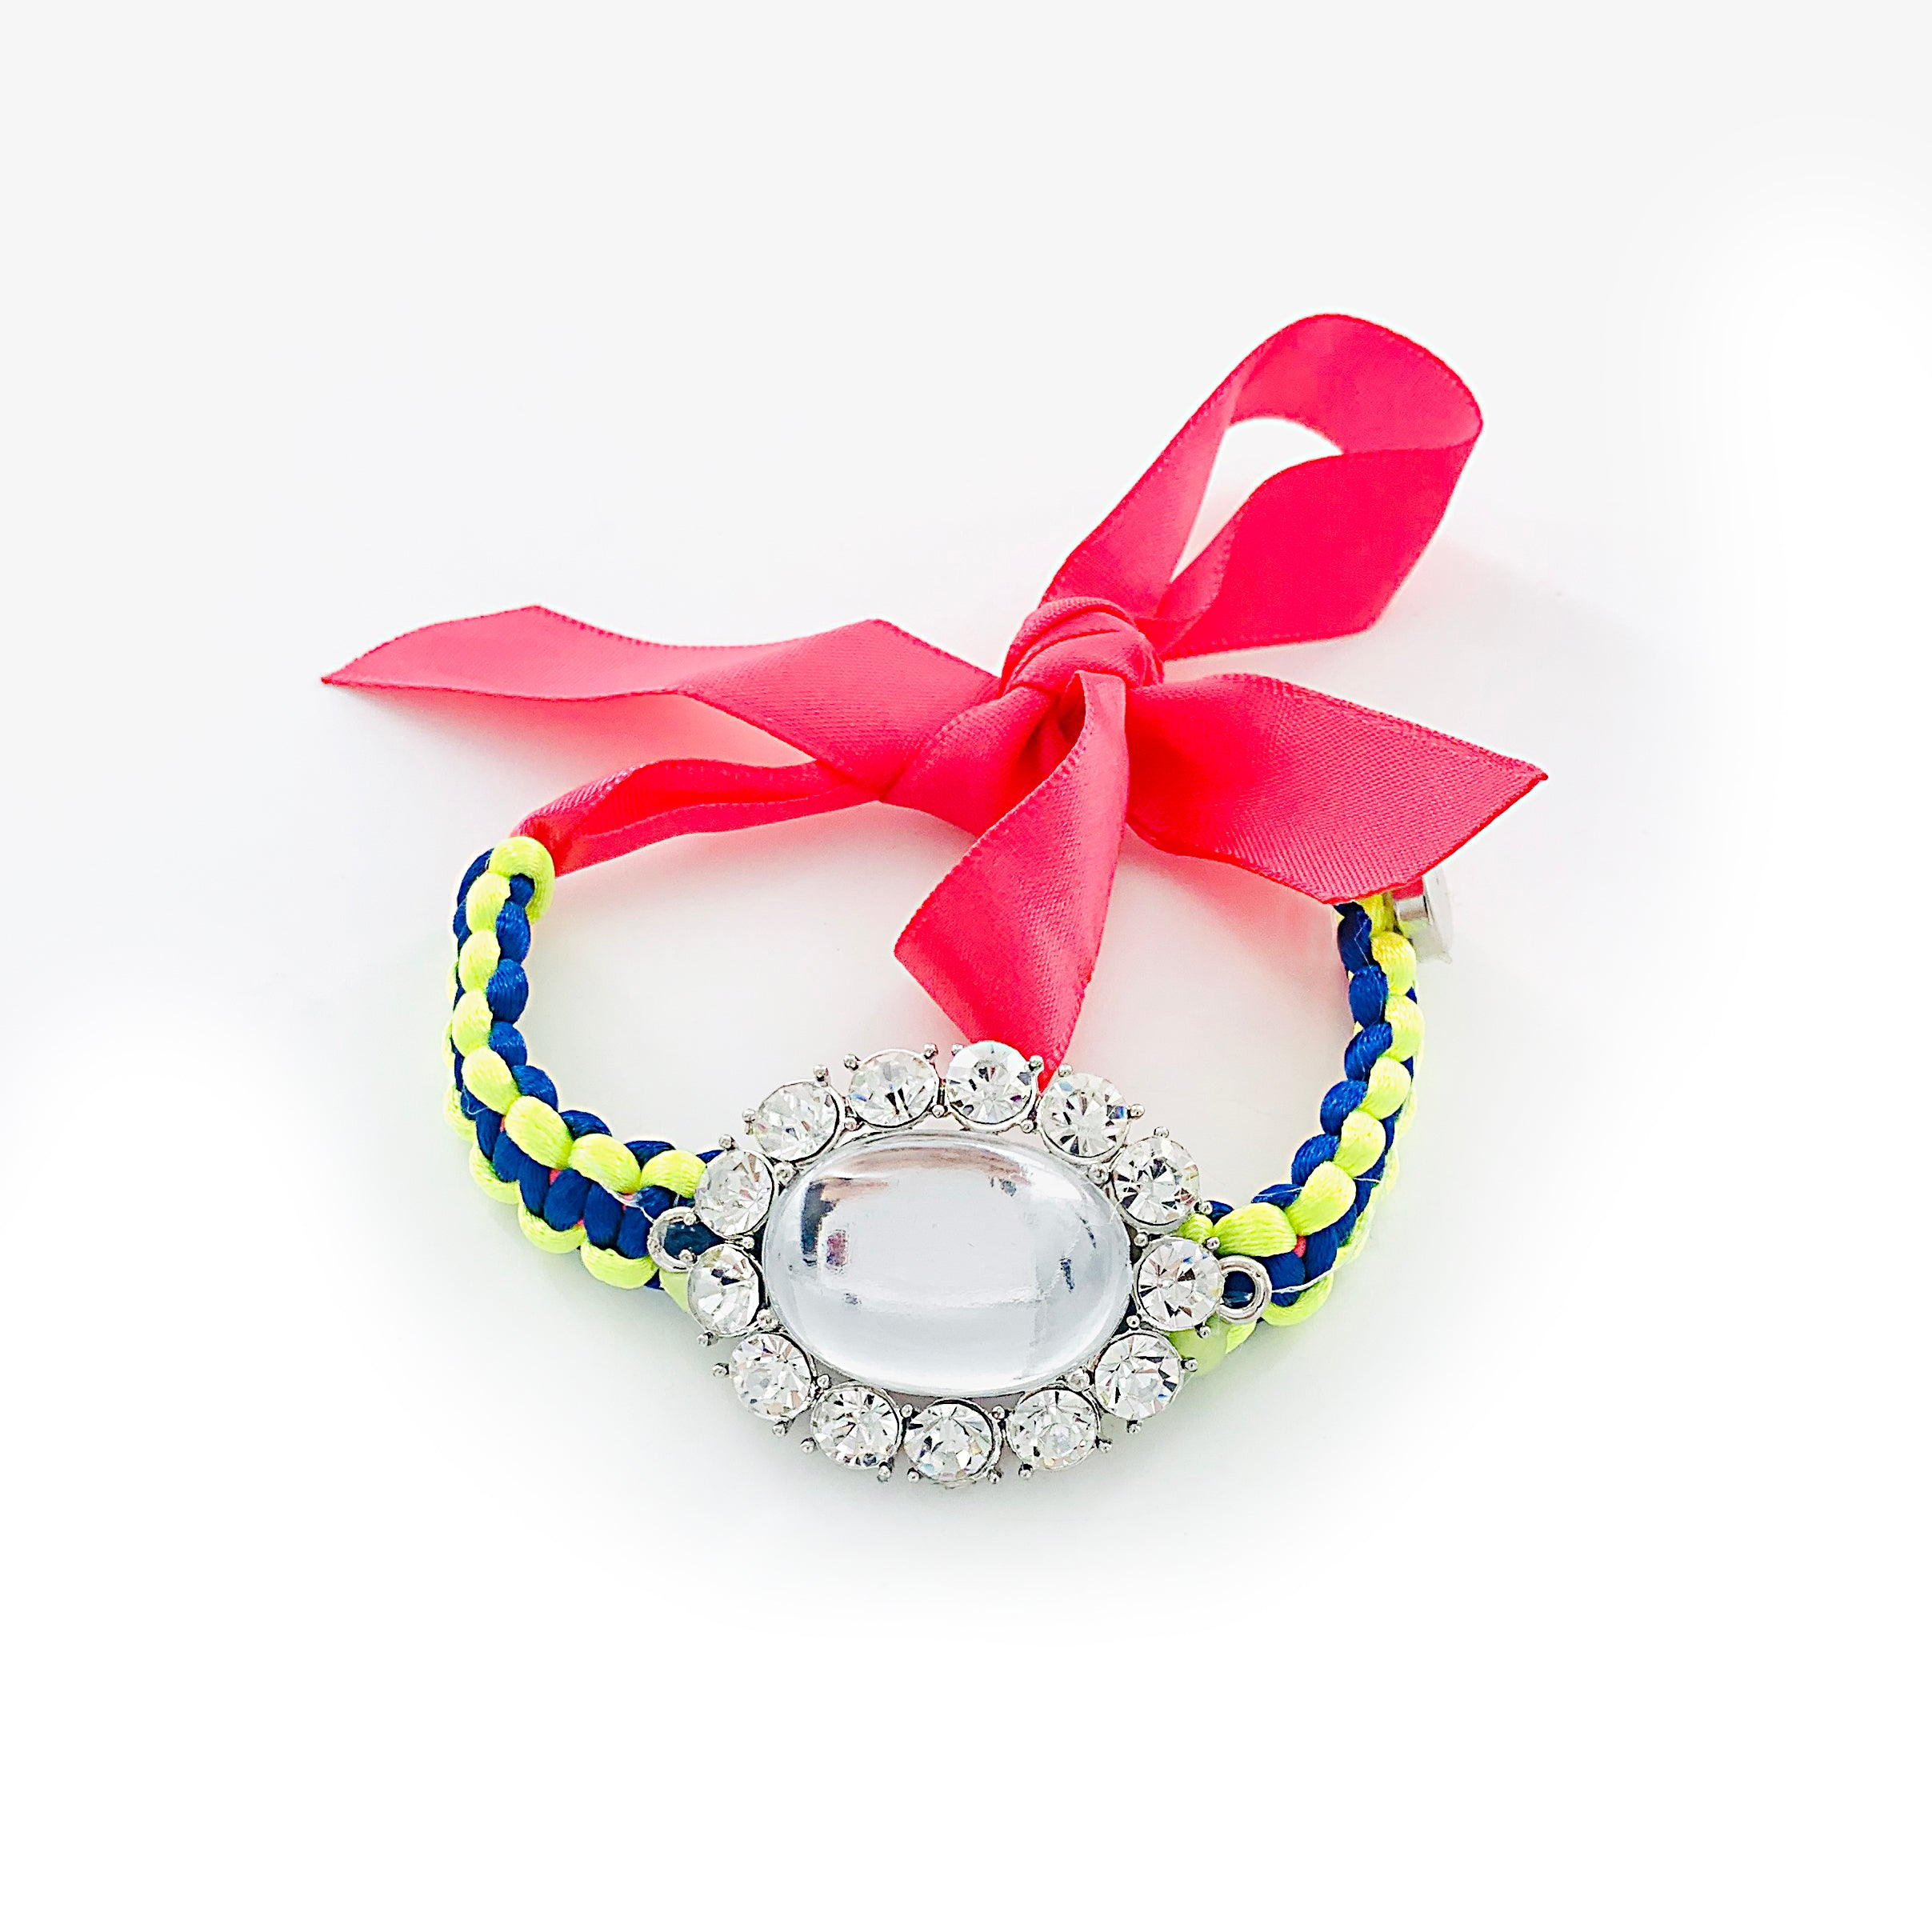 Large diamante stone with Ribbon and Rope band